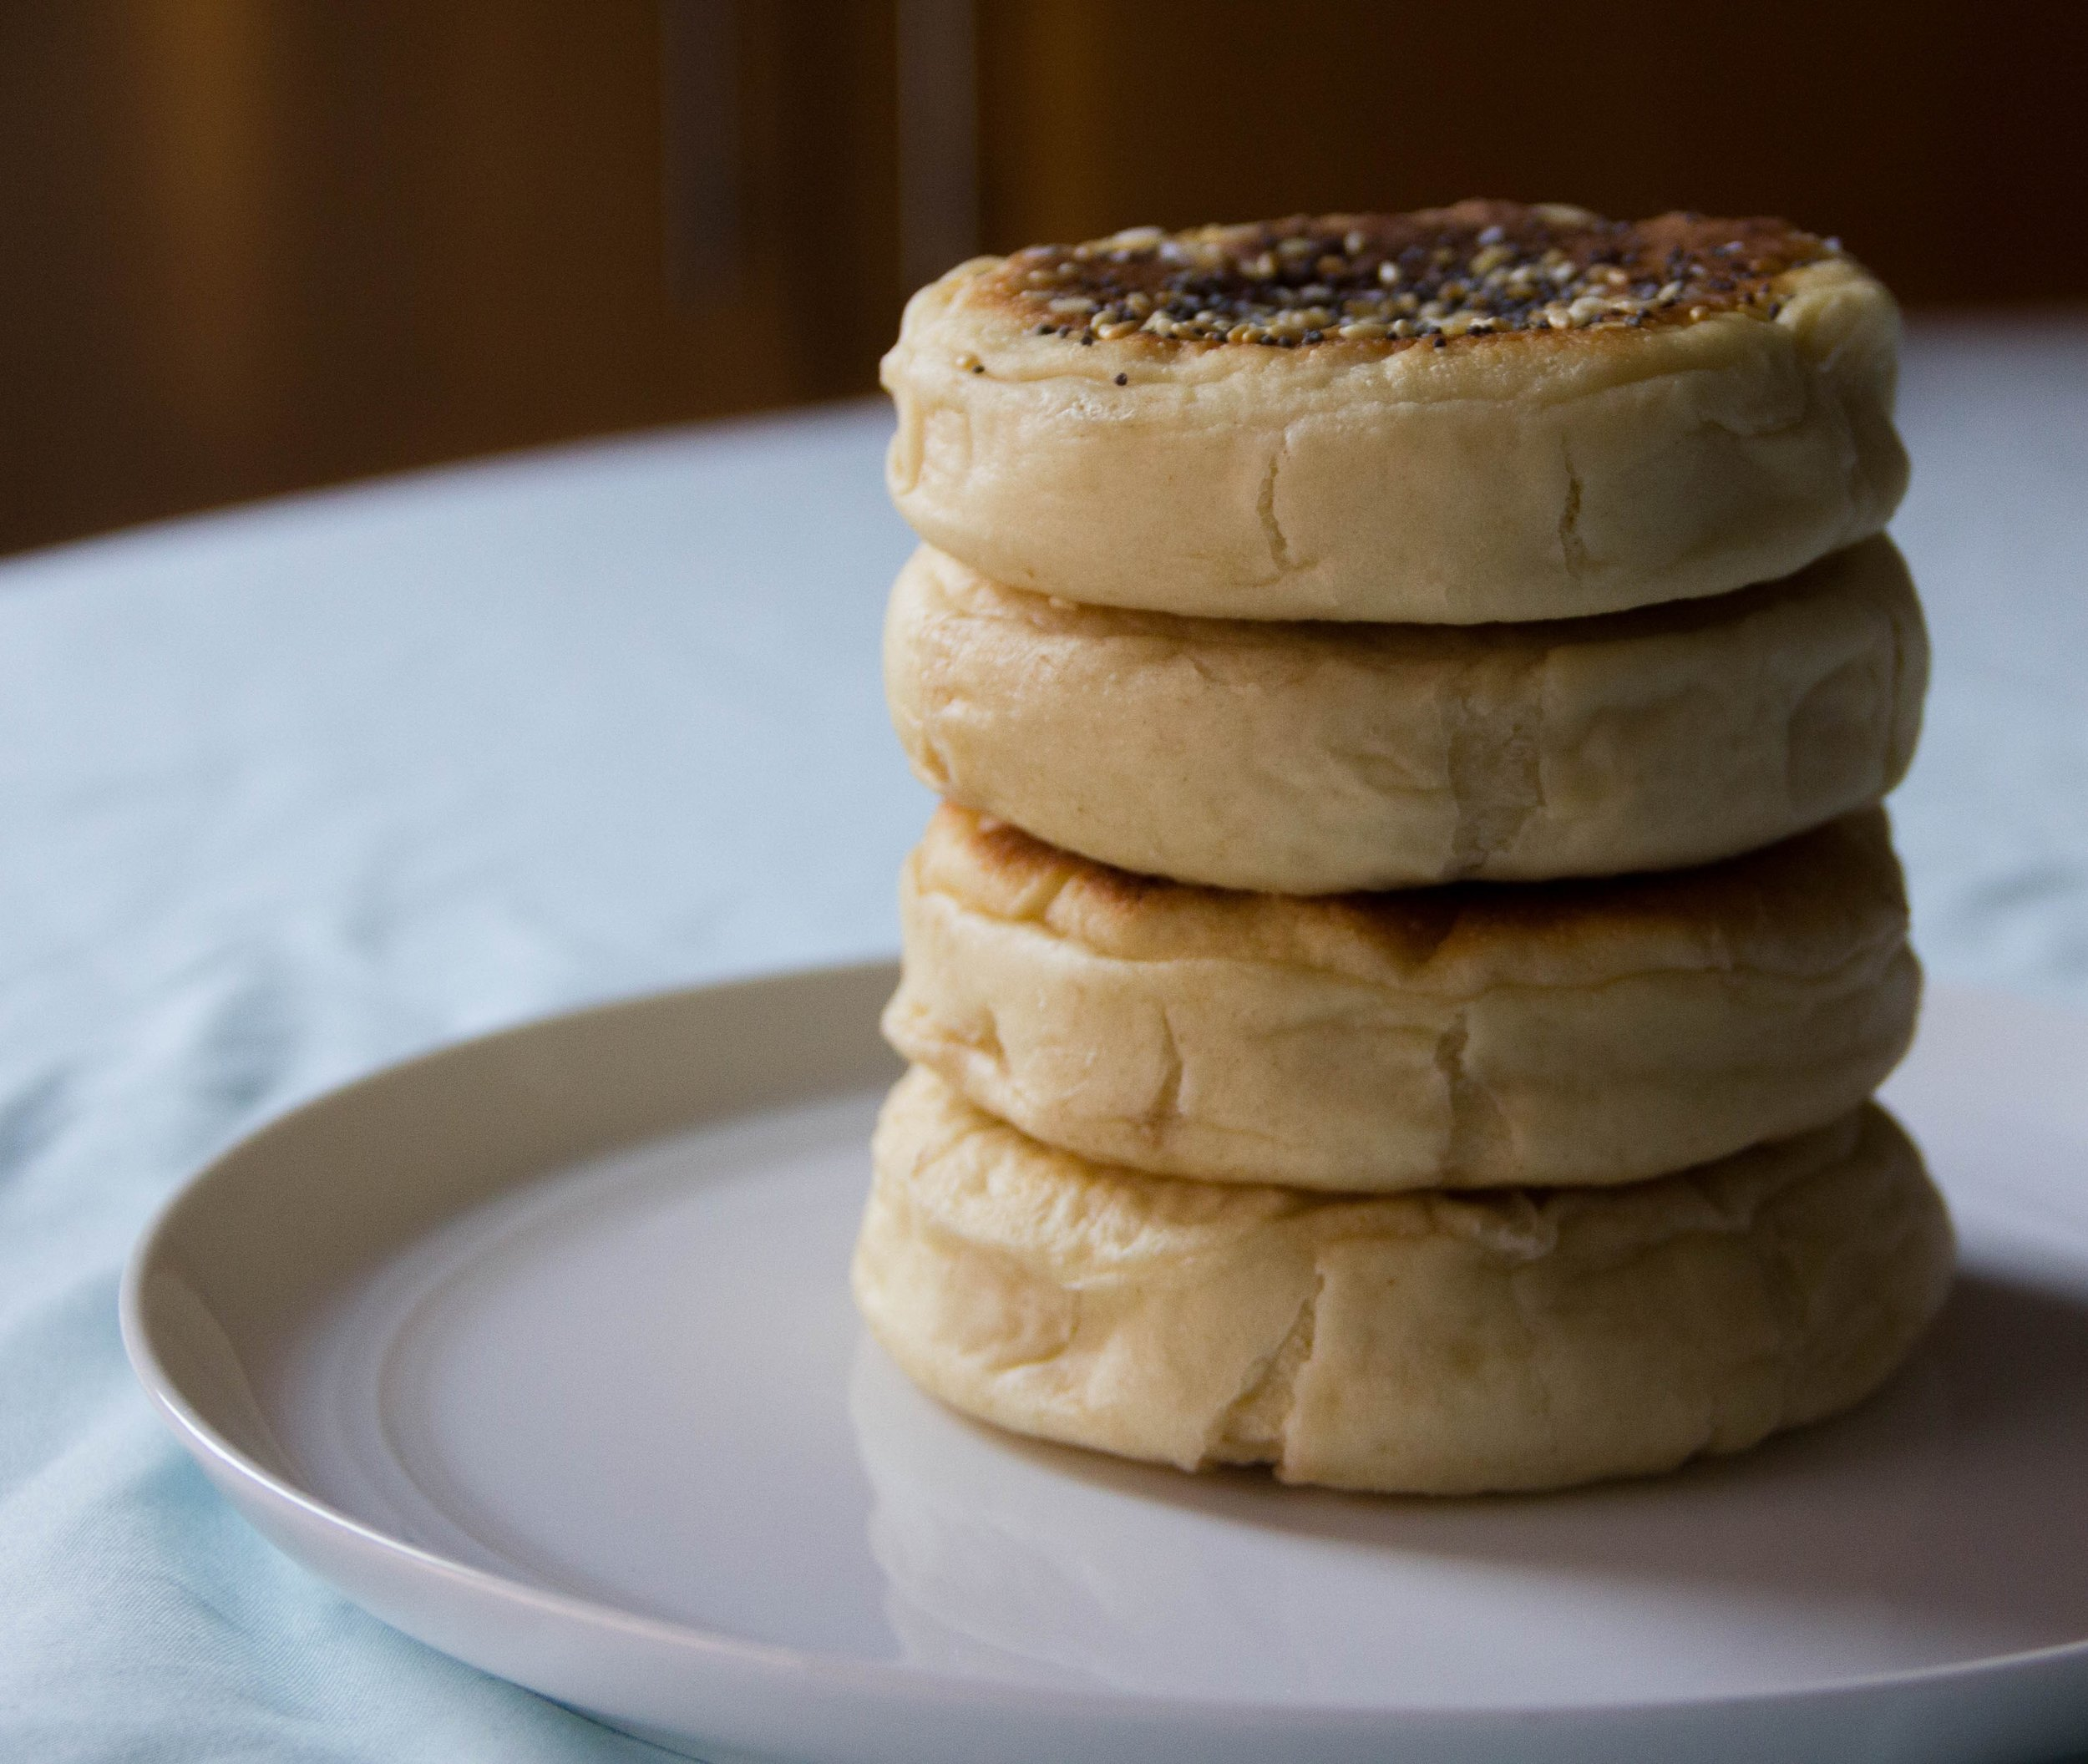 Just a stack of English Muffins!